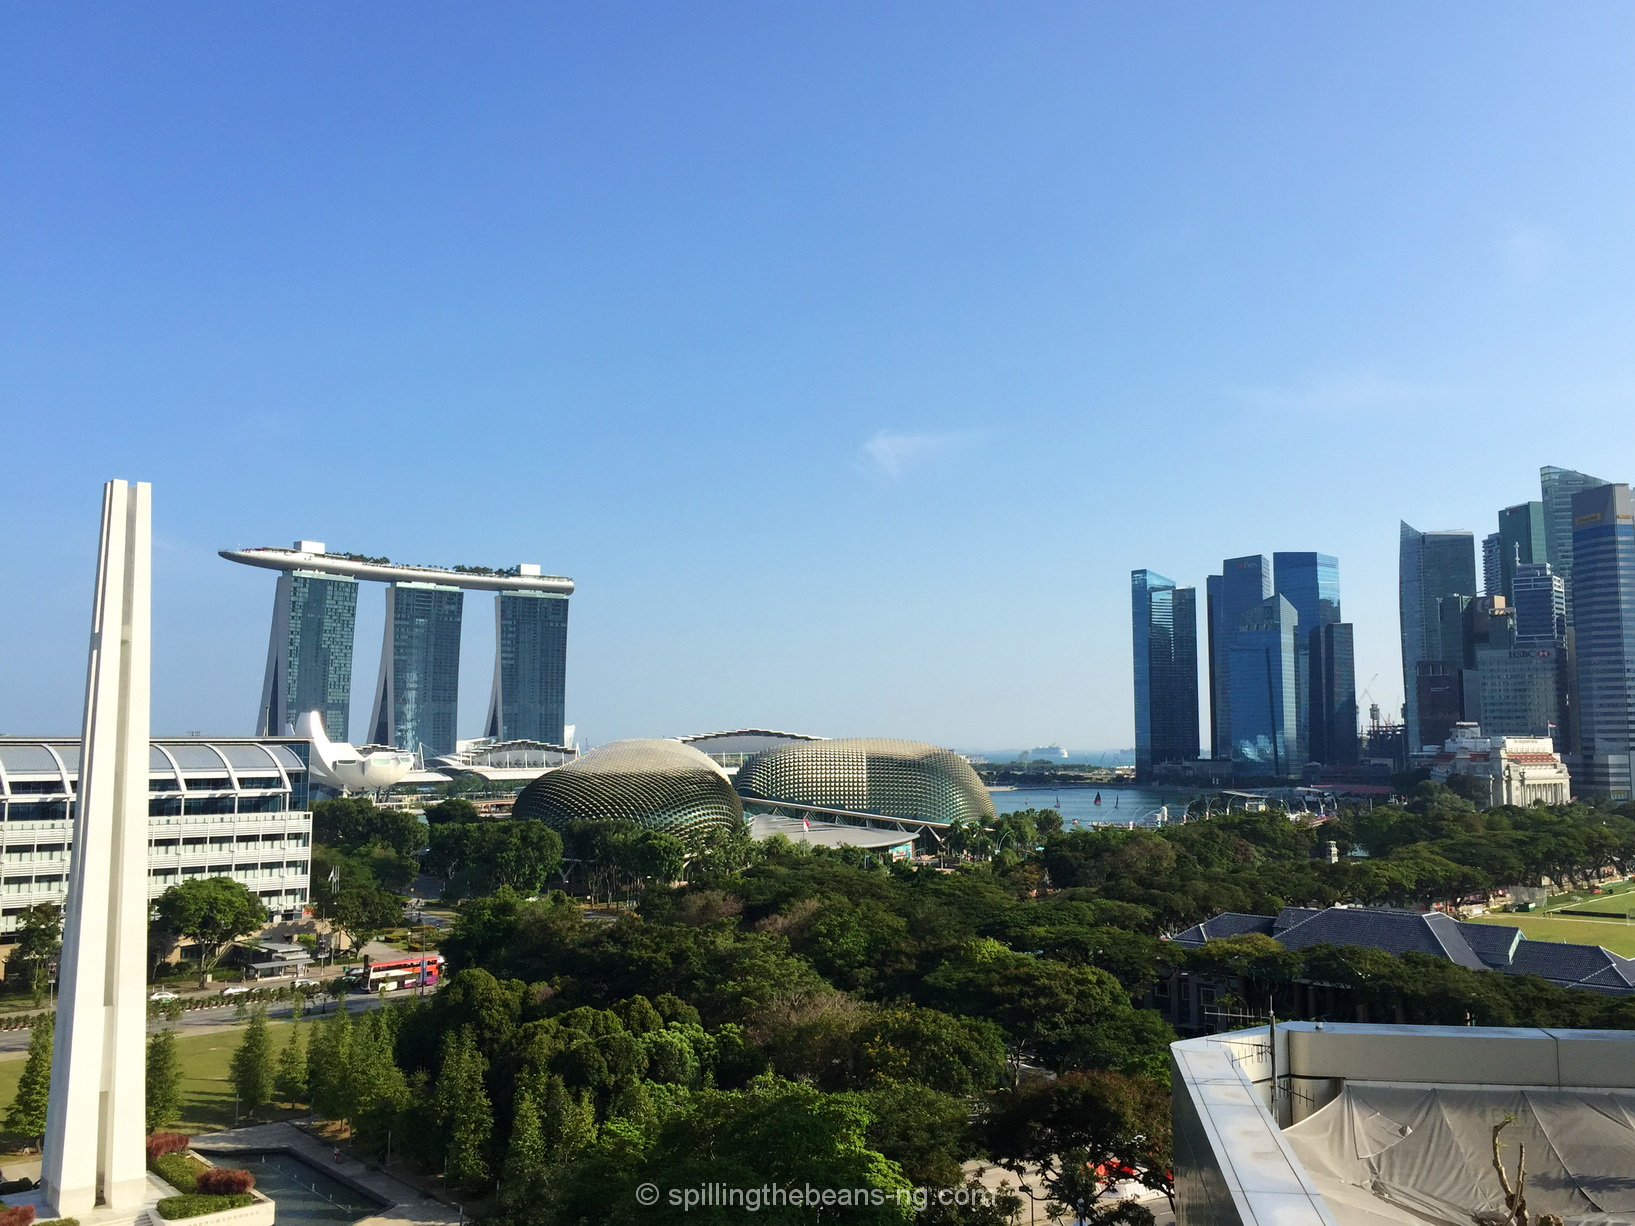 Marina Bay Sands and the Singapore skyline